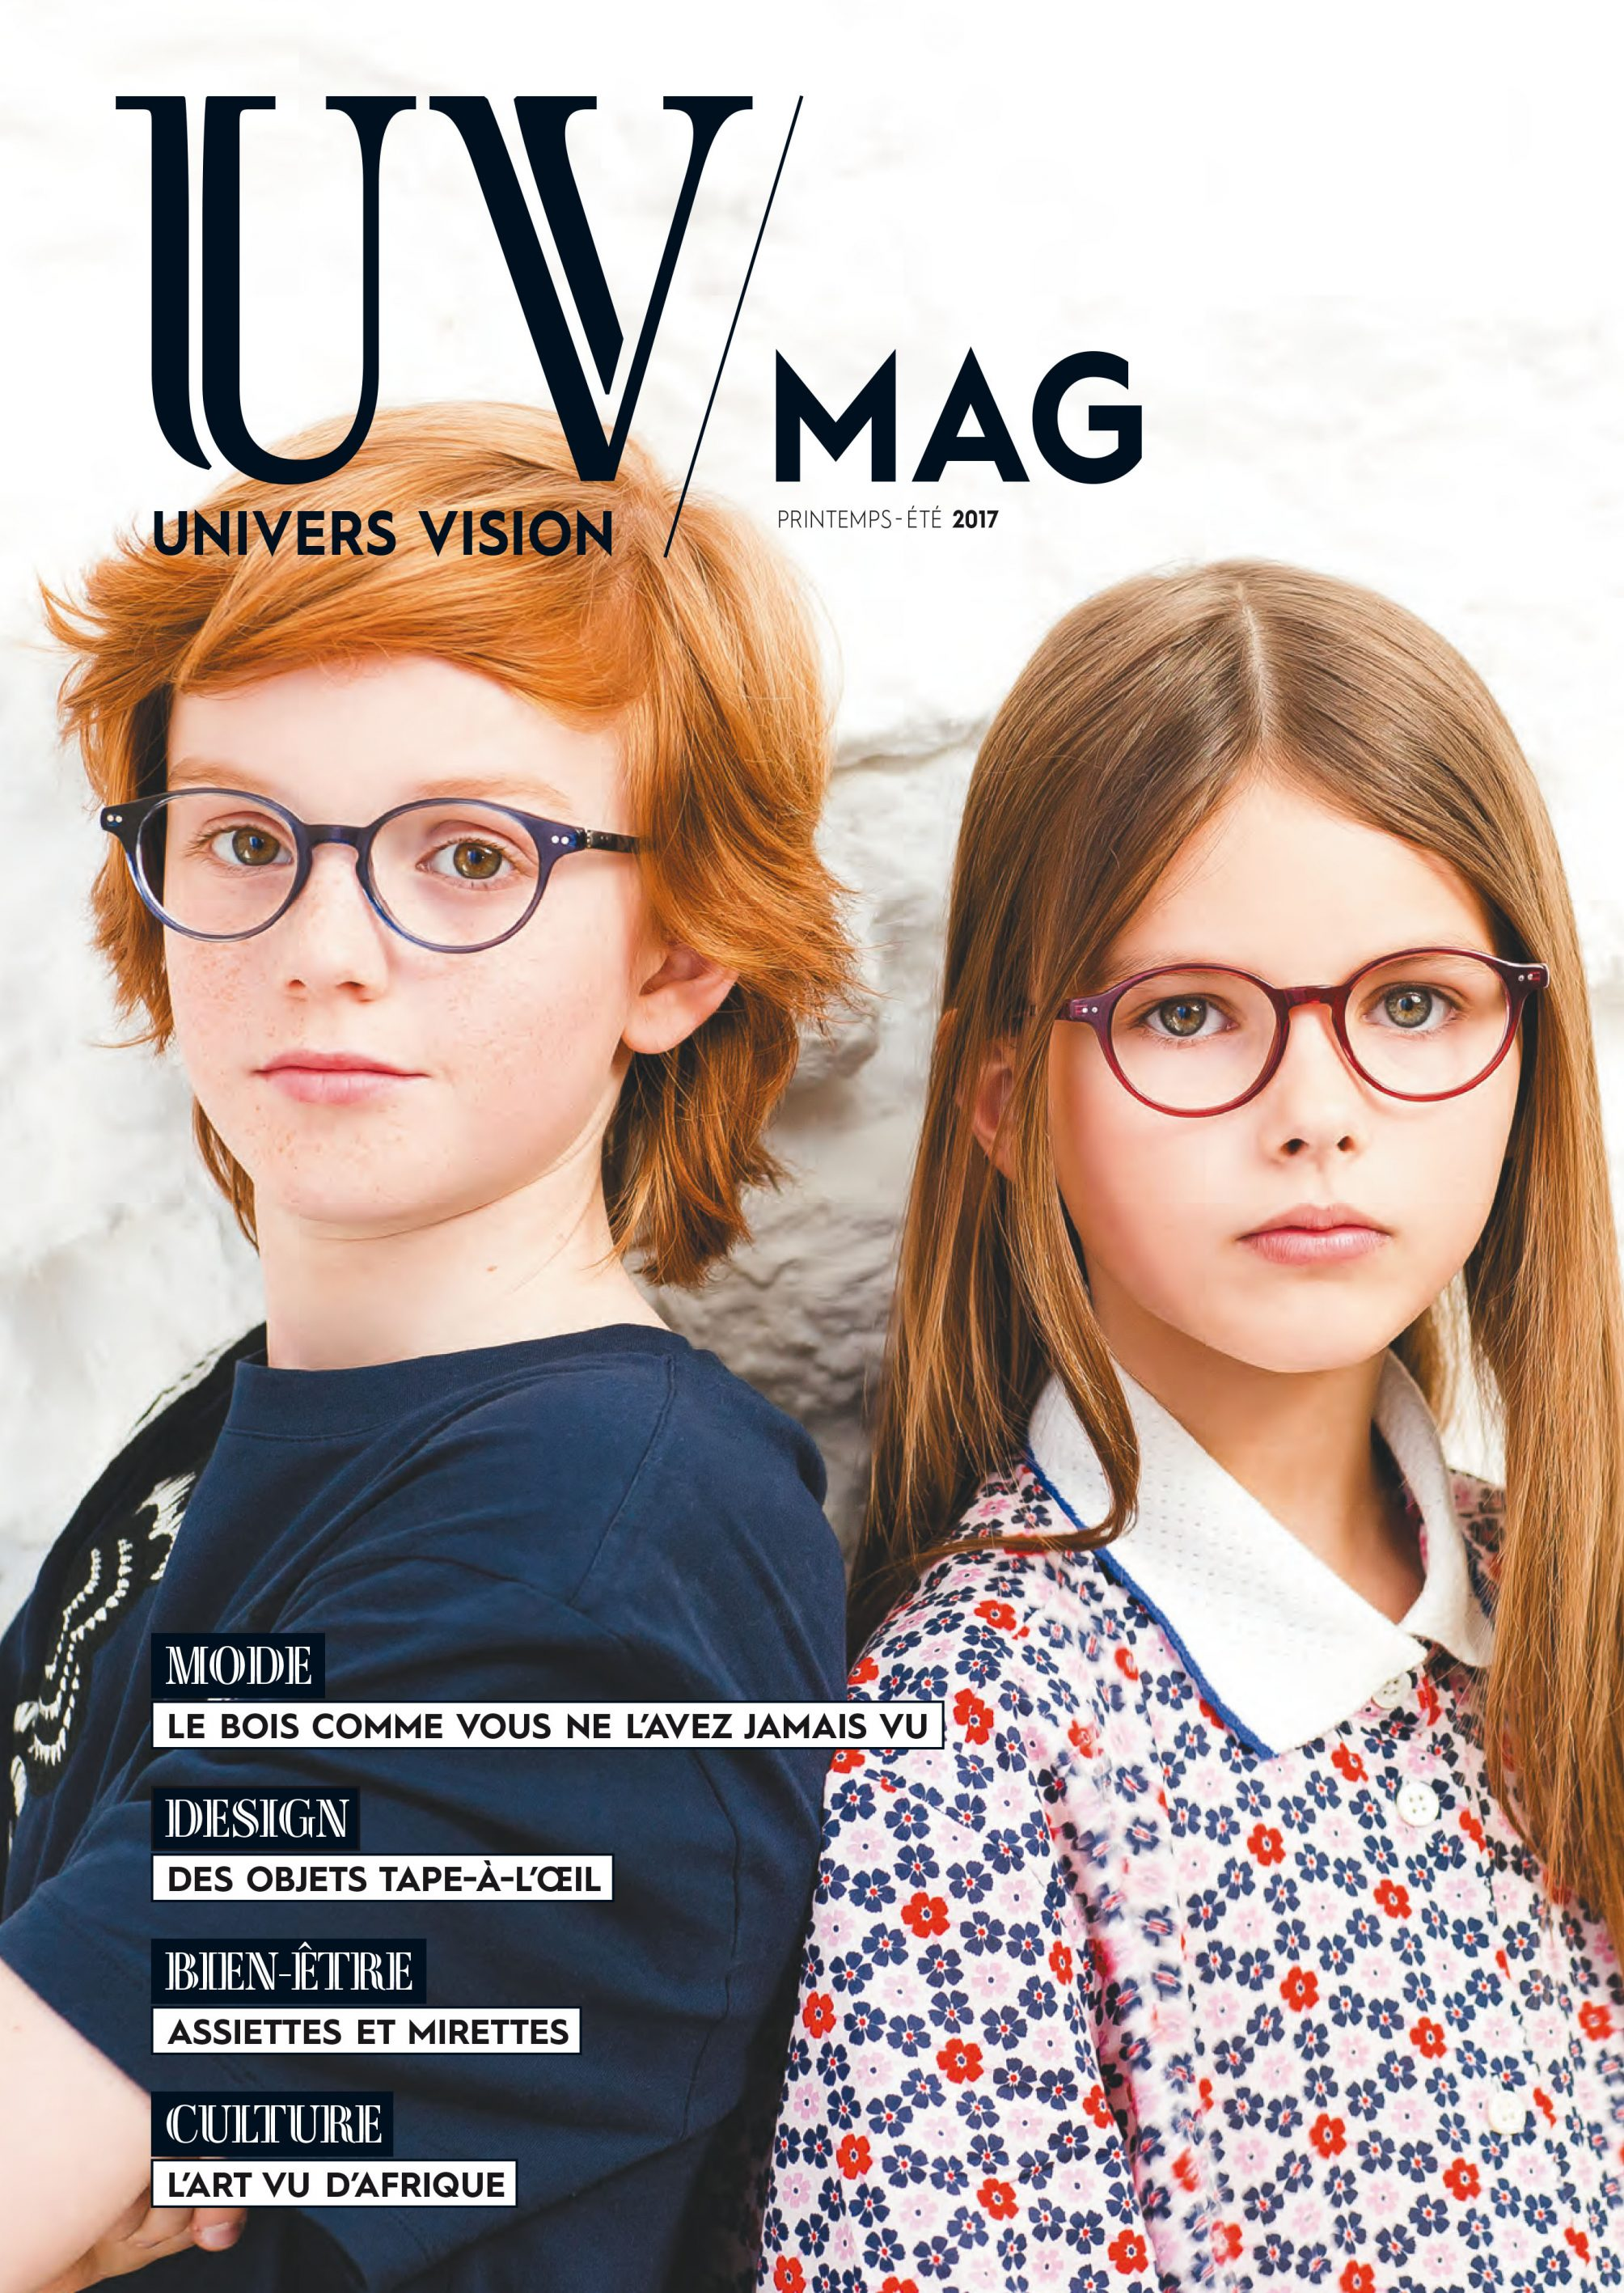 Editions Presse Optic - UV MAG - Presse Optic